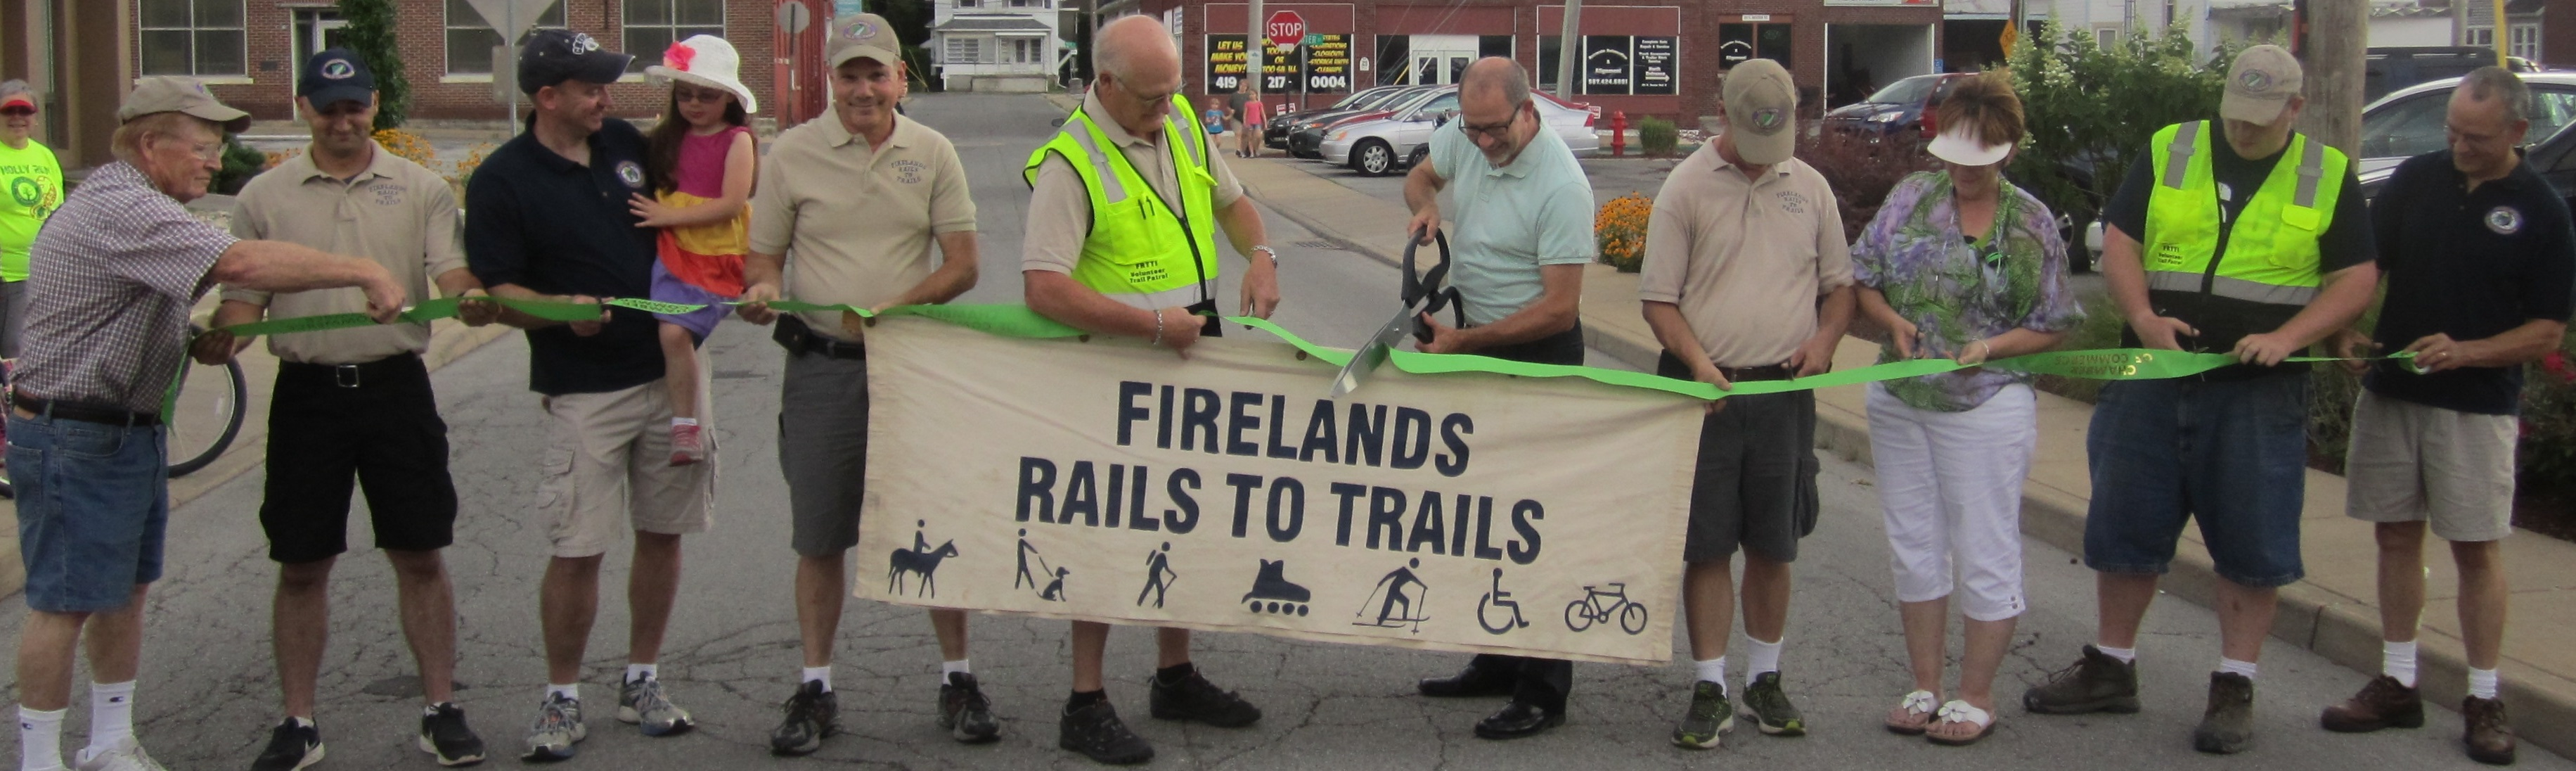 Firelands Rails to Trails, Inc.